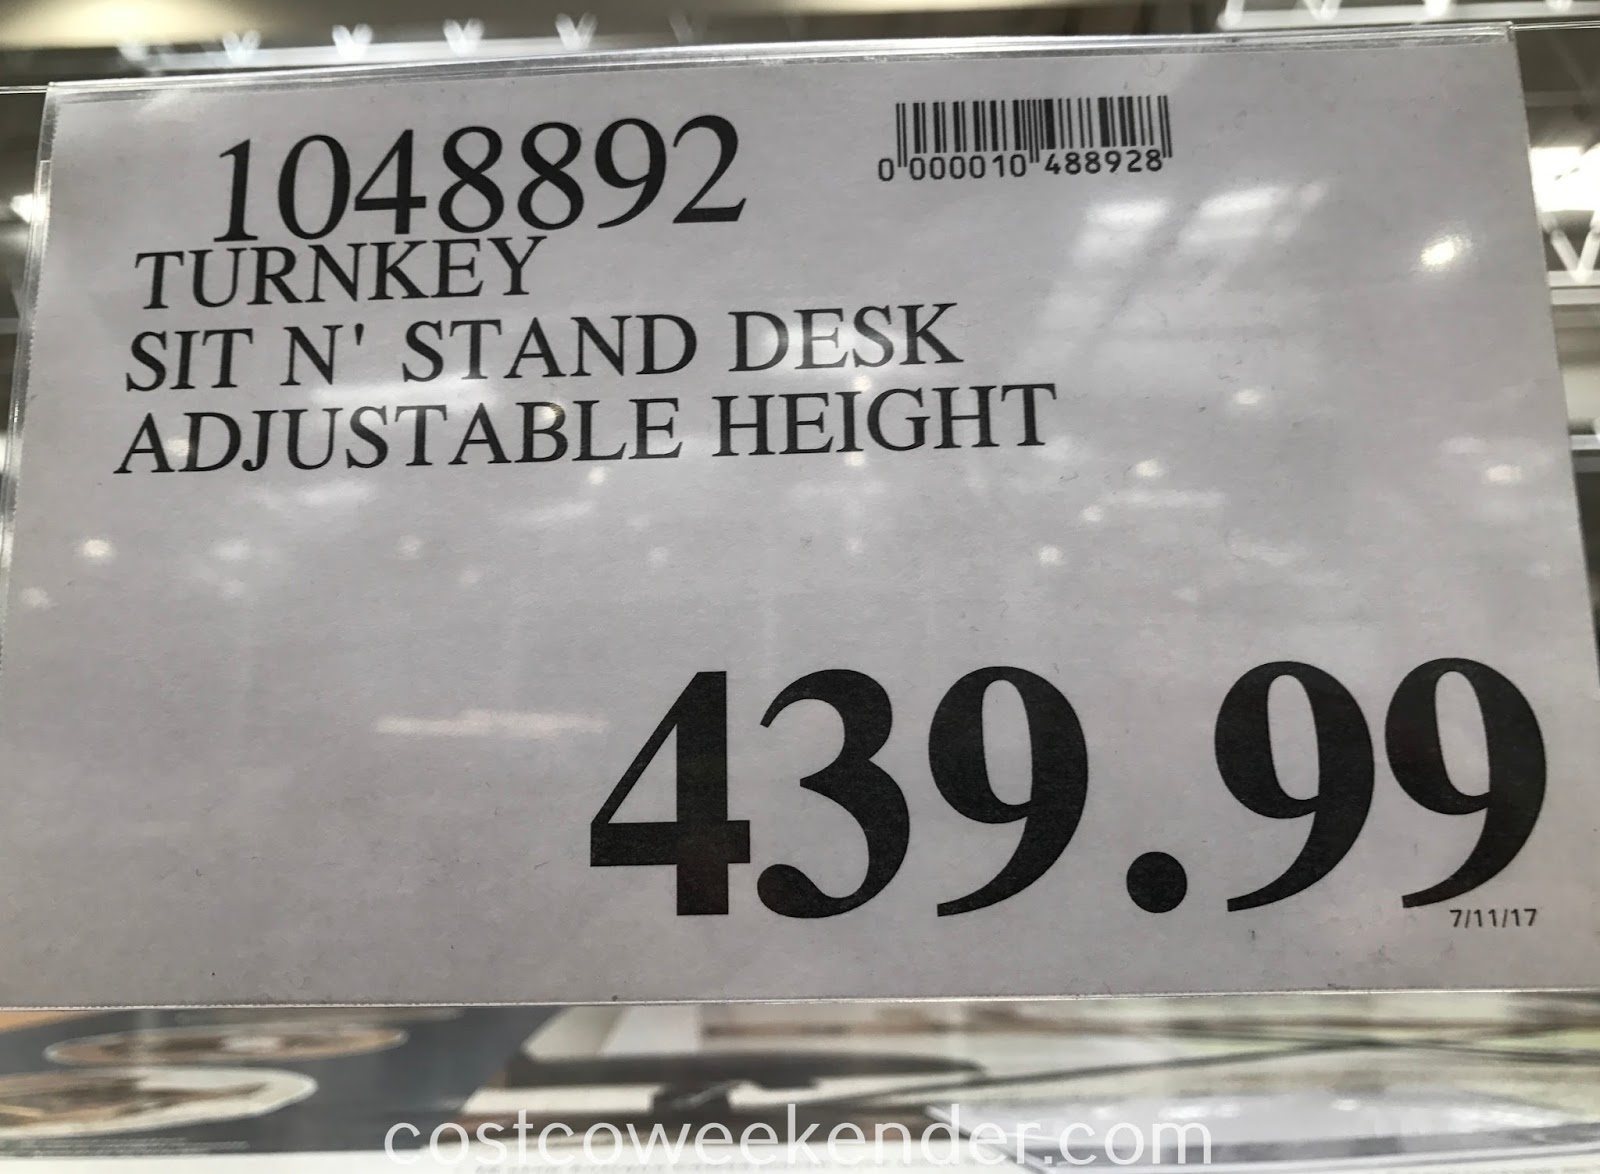 Deal for the Turnkey Powered Sit n' Stand Desk at Costco